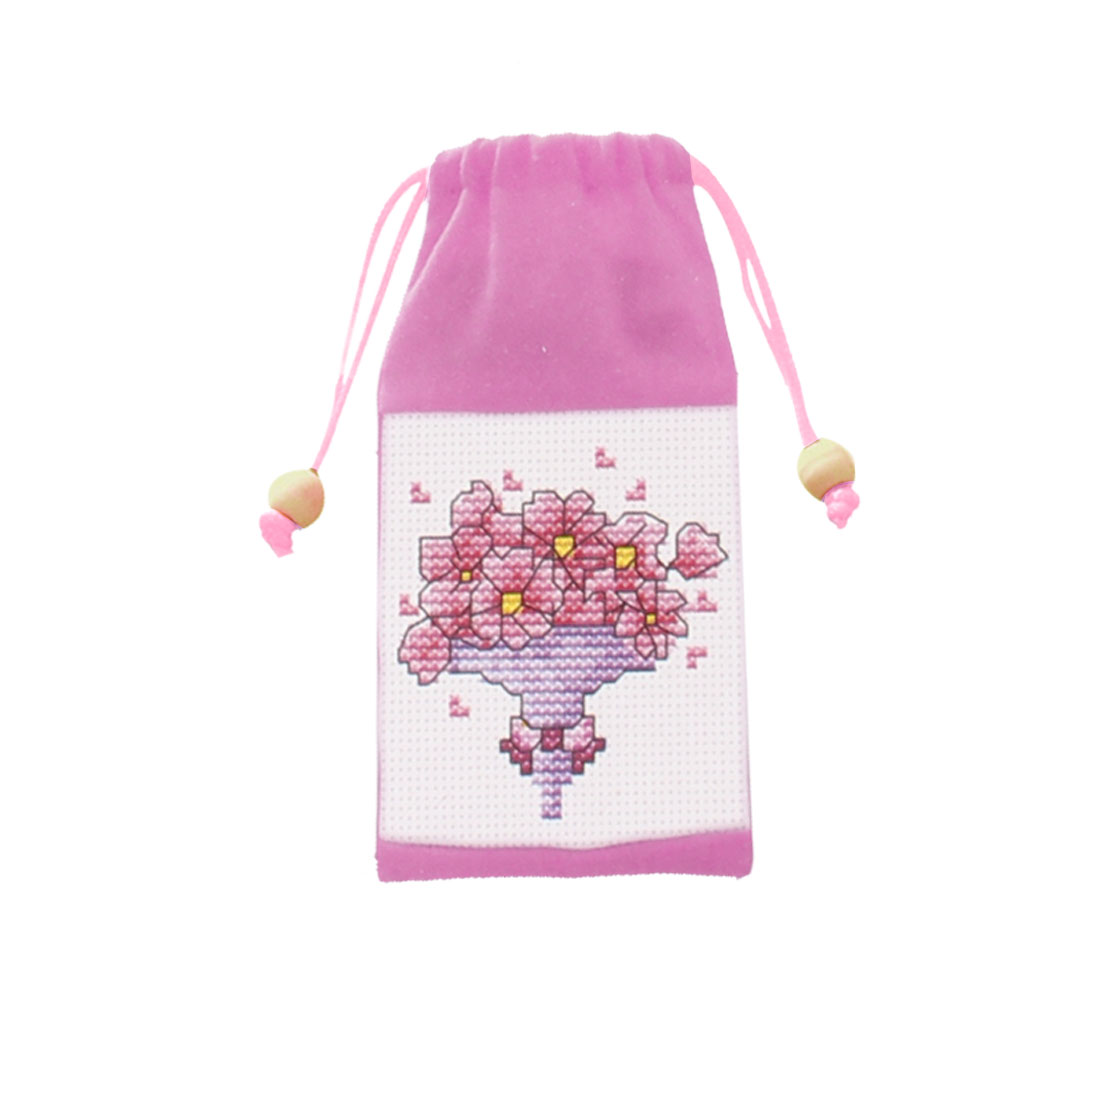 Floral Pattern Cross Stitch Counted Handmade Kit Cell Phone Bag Pouch